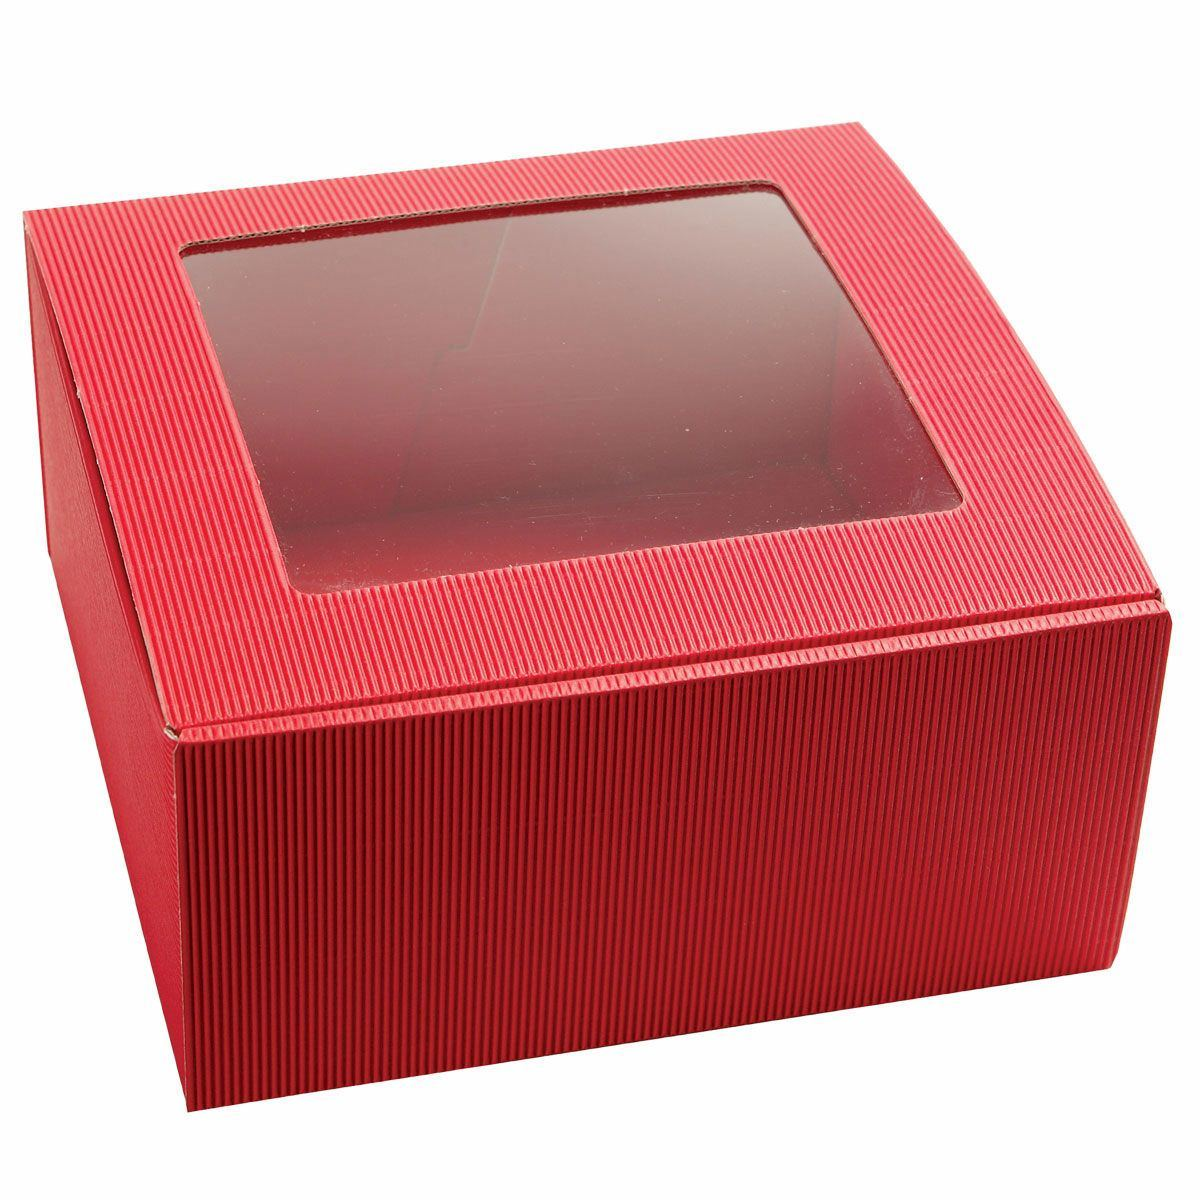 Round Cosmetic Tin Box Cosmetic Packing Boxes